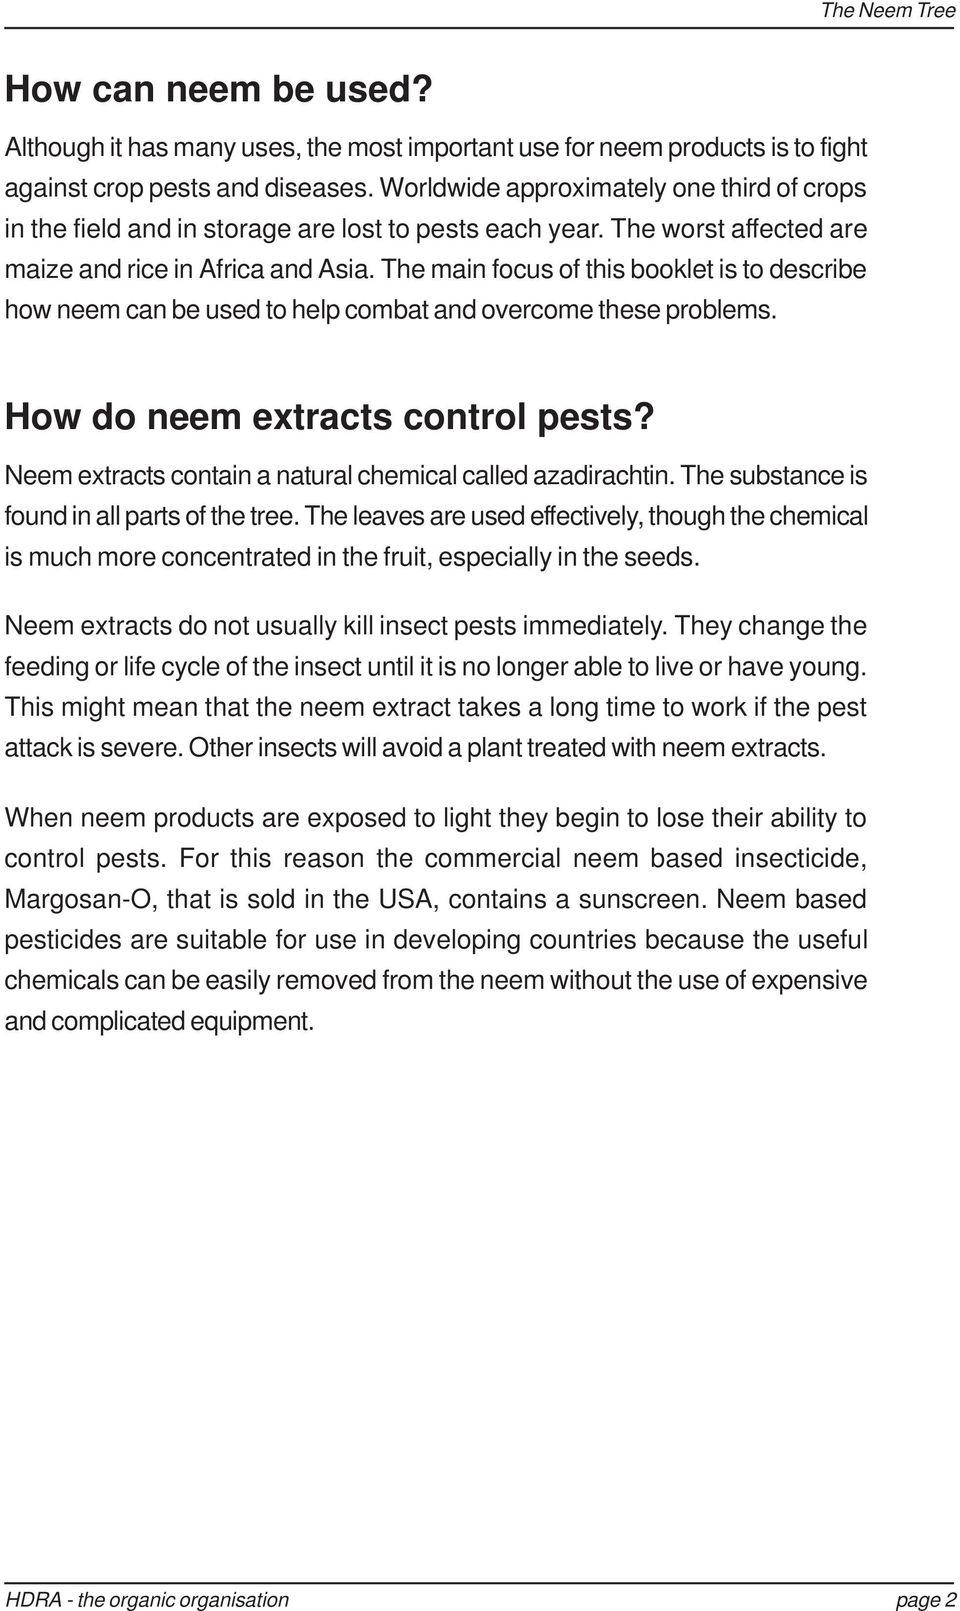 The main focus of this booklet is to describe how neem can be used to help combat and overcome these problems. How do neem extracts control pests?